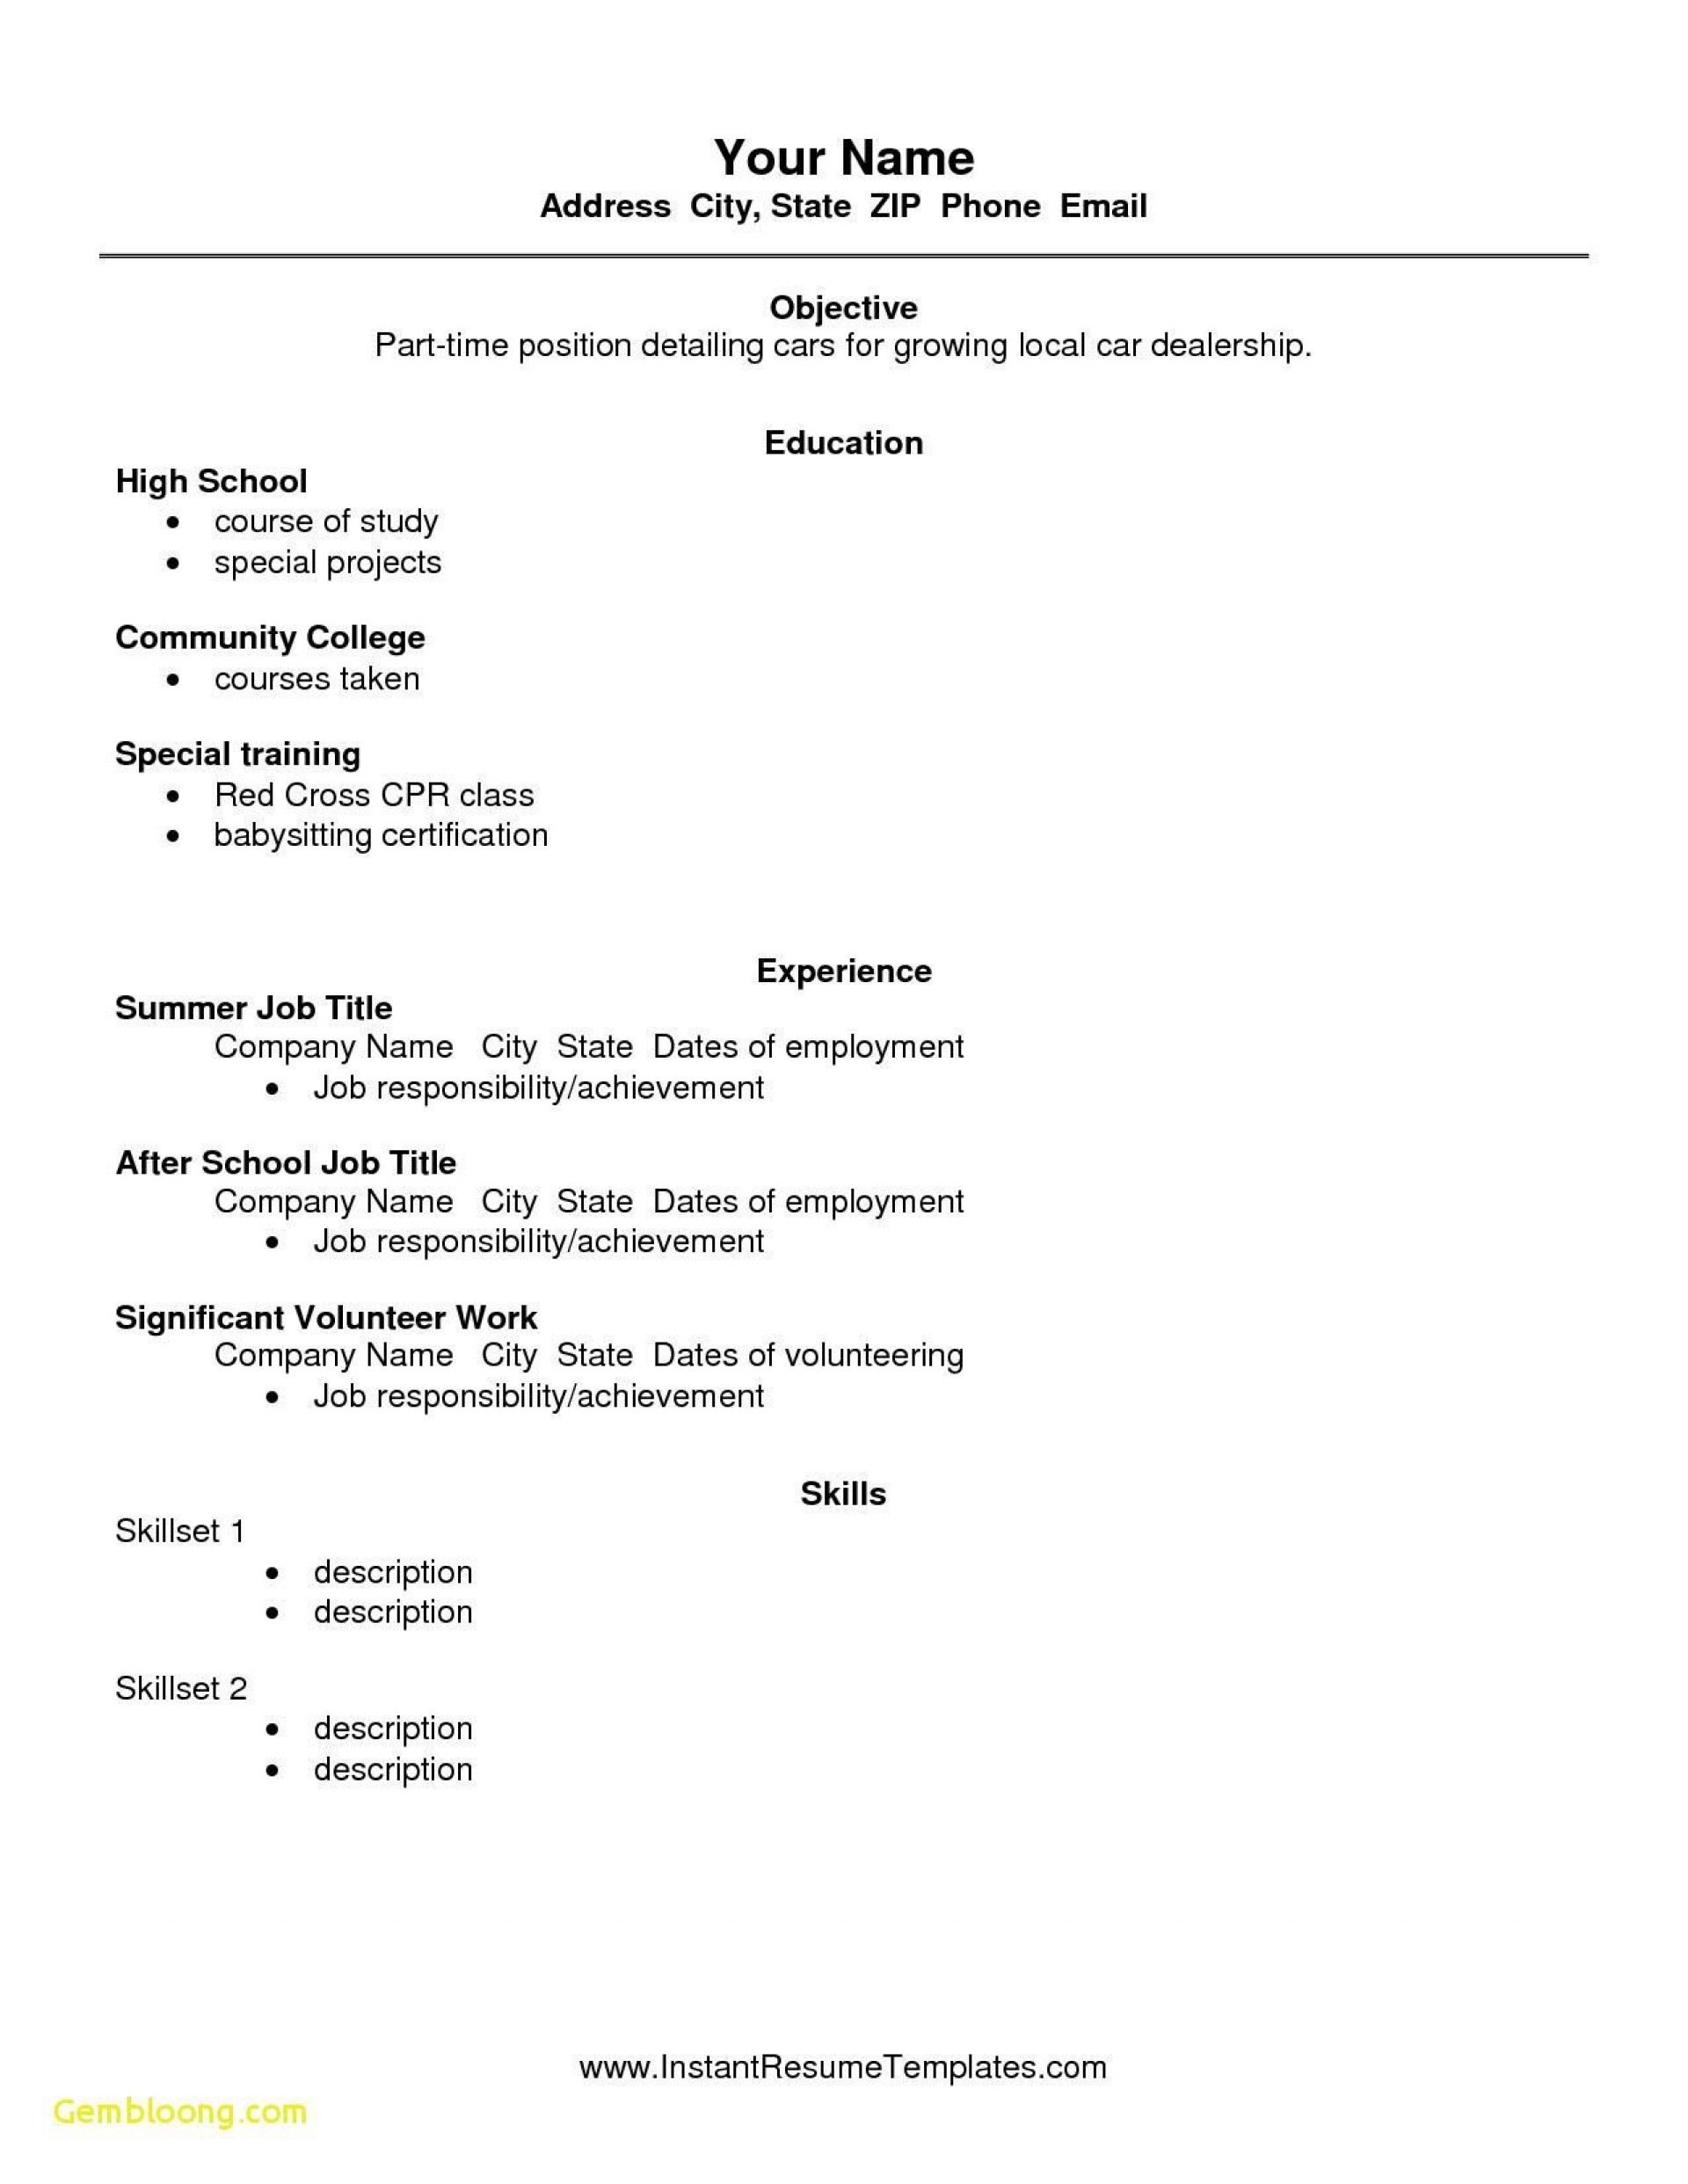 004 Impressive Free Sample High School Resume Template Concept 1920